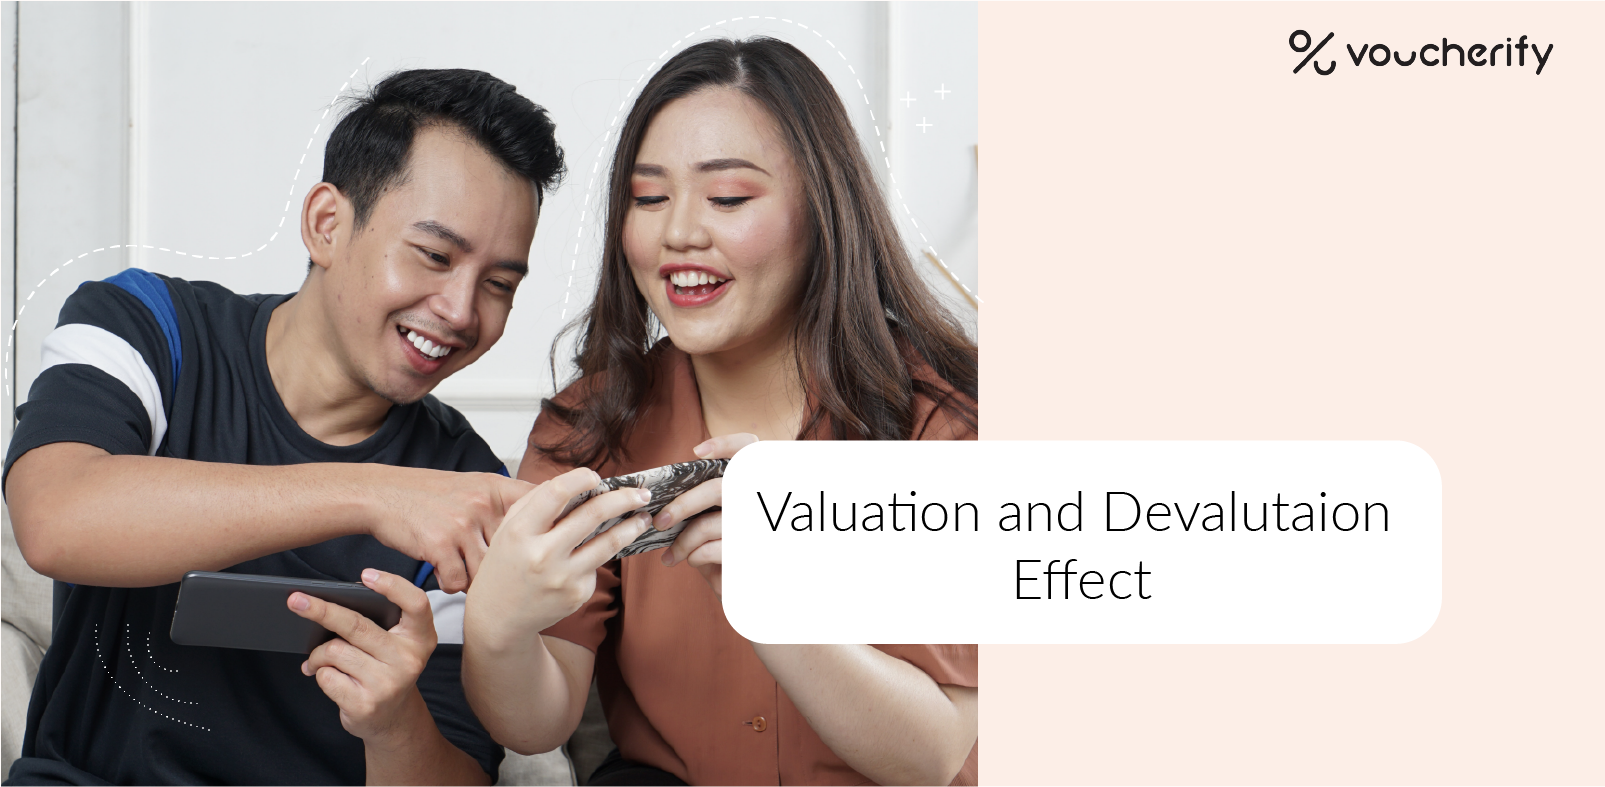 Valuation and Devaluation Effects – a powerful marketing strategy to increase sales by appealing to customer goals.